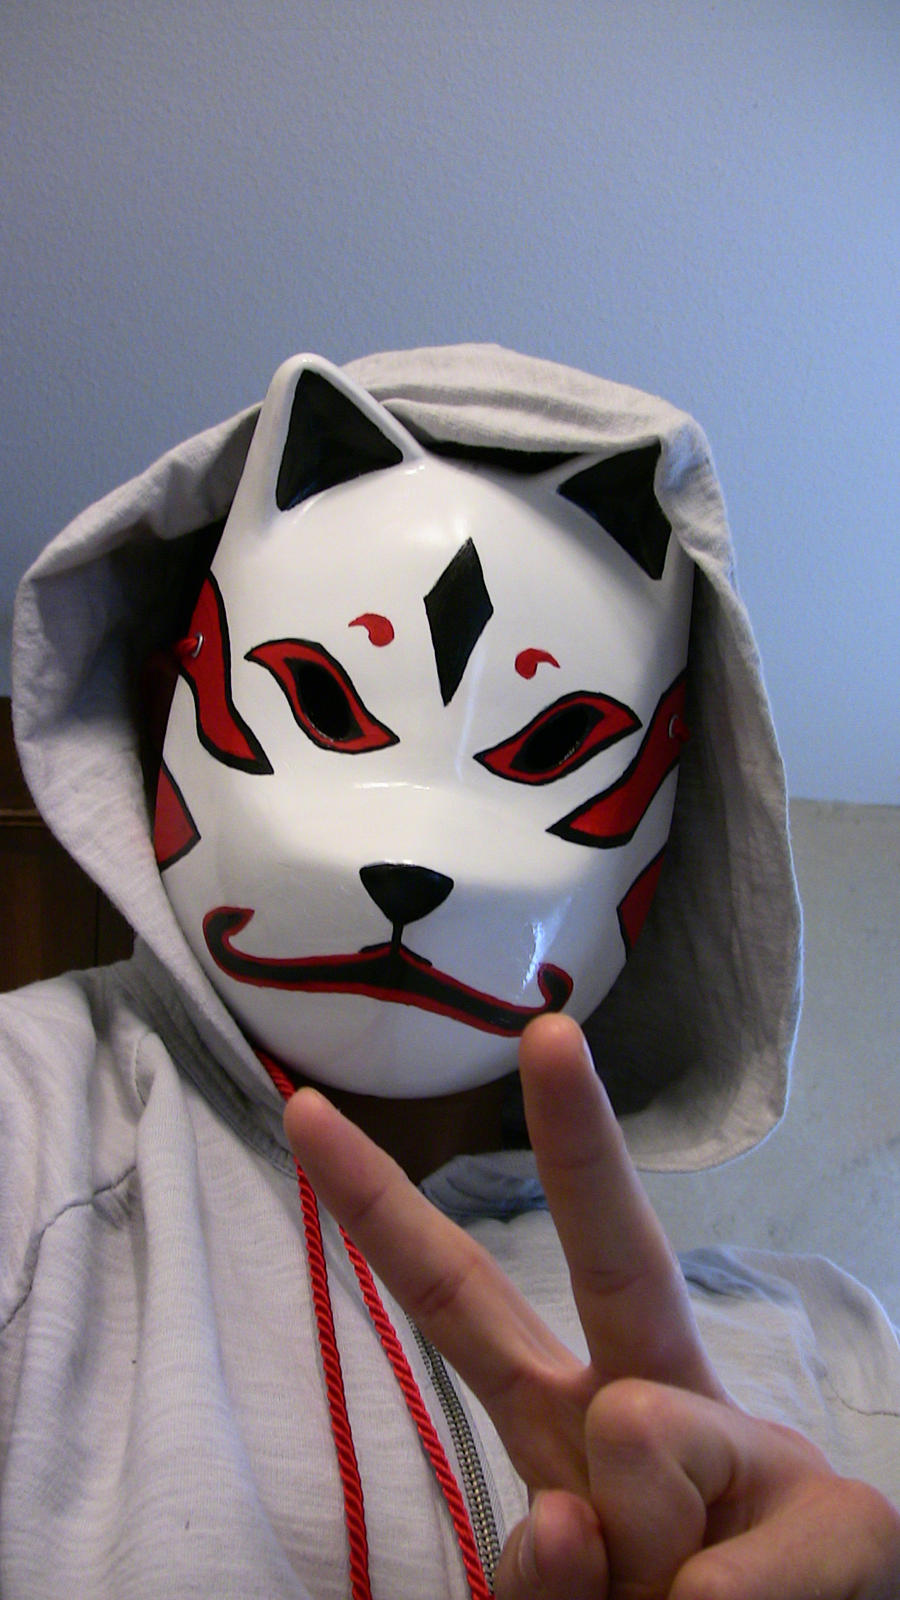 ANBU Kitsune Mask by SoulSynced on DeviantArt